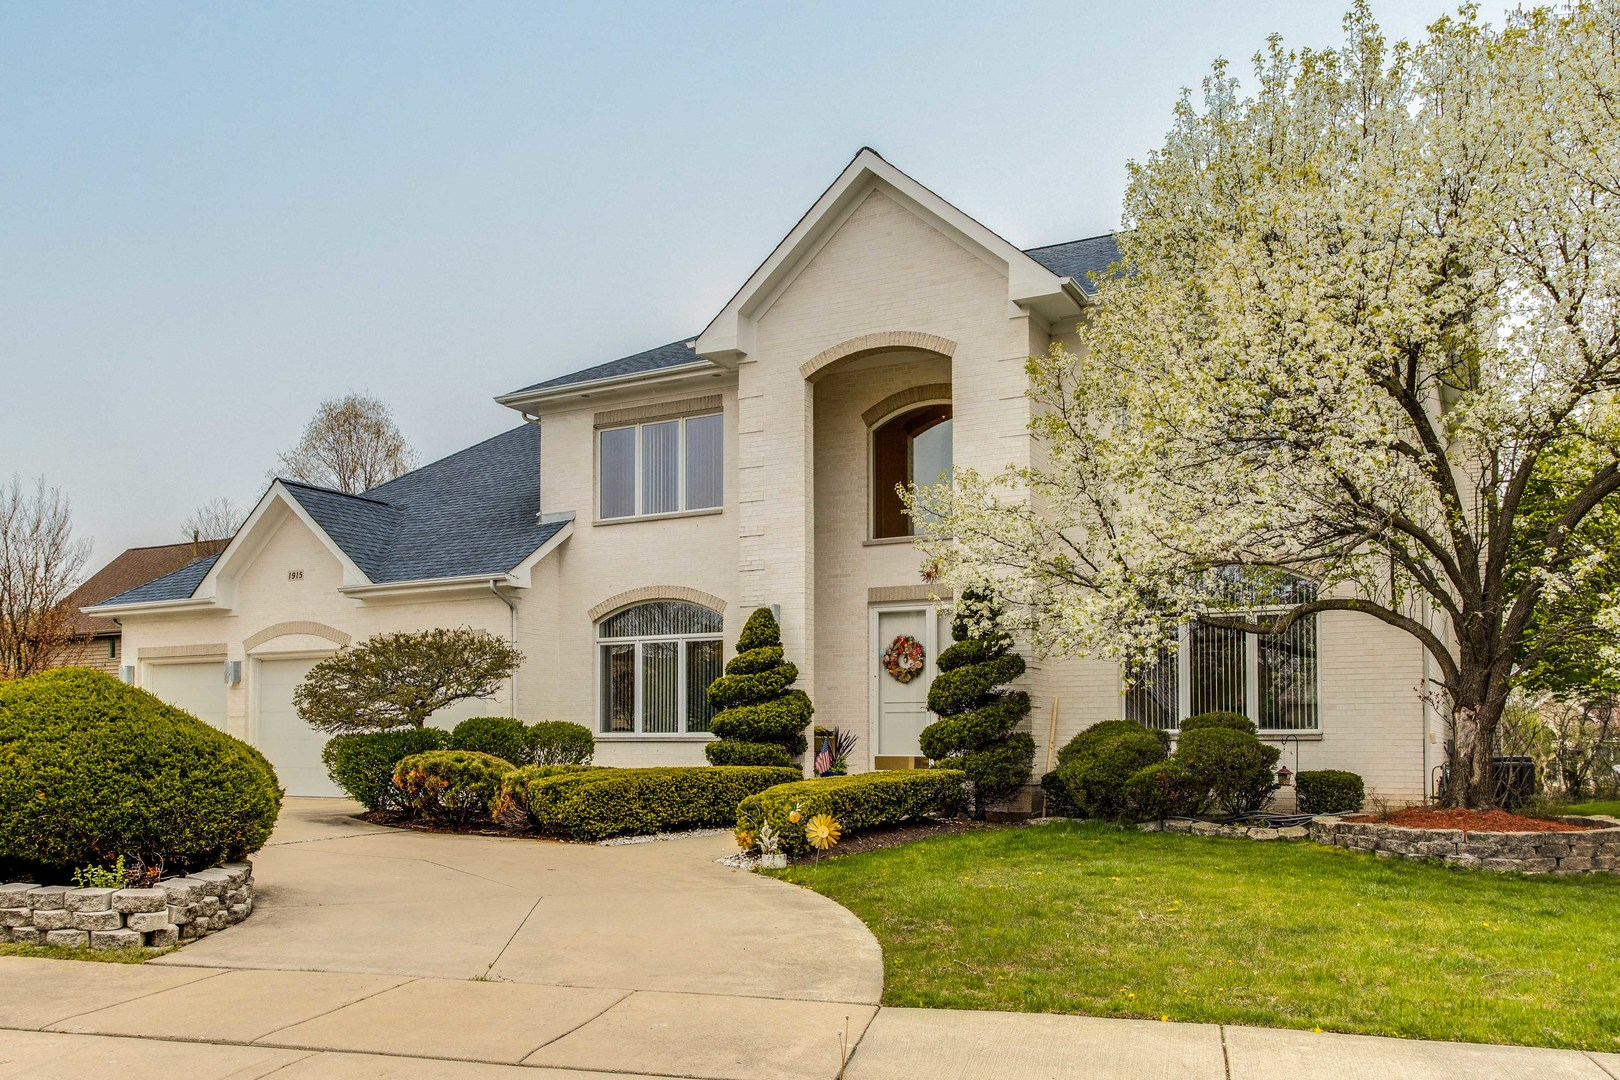 1915 Sheridan Road, Buffalo Grove in Lake County, IL 60089 Home for Sale